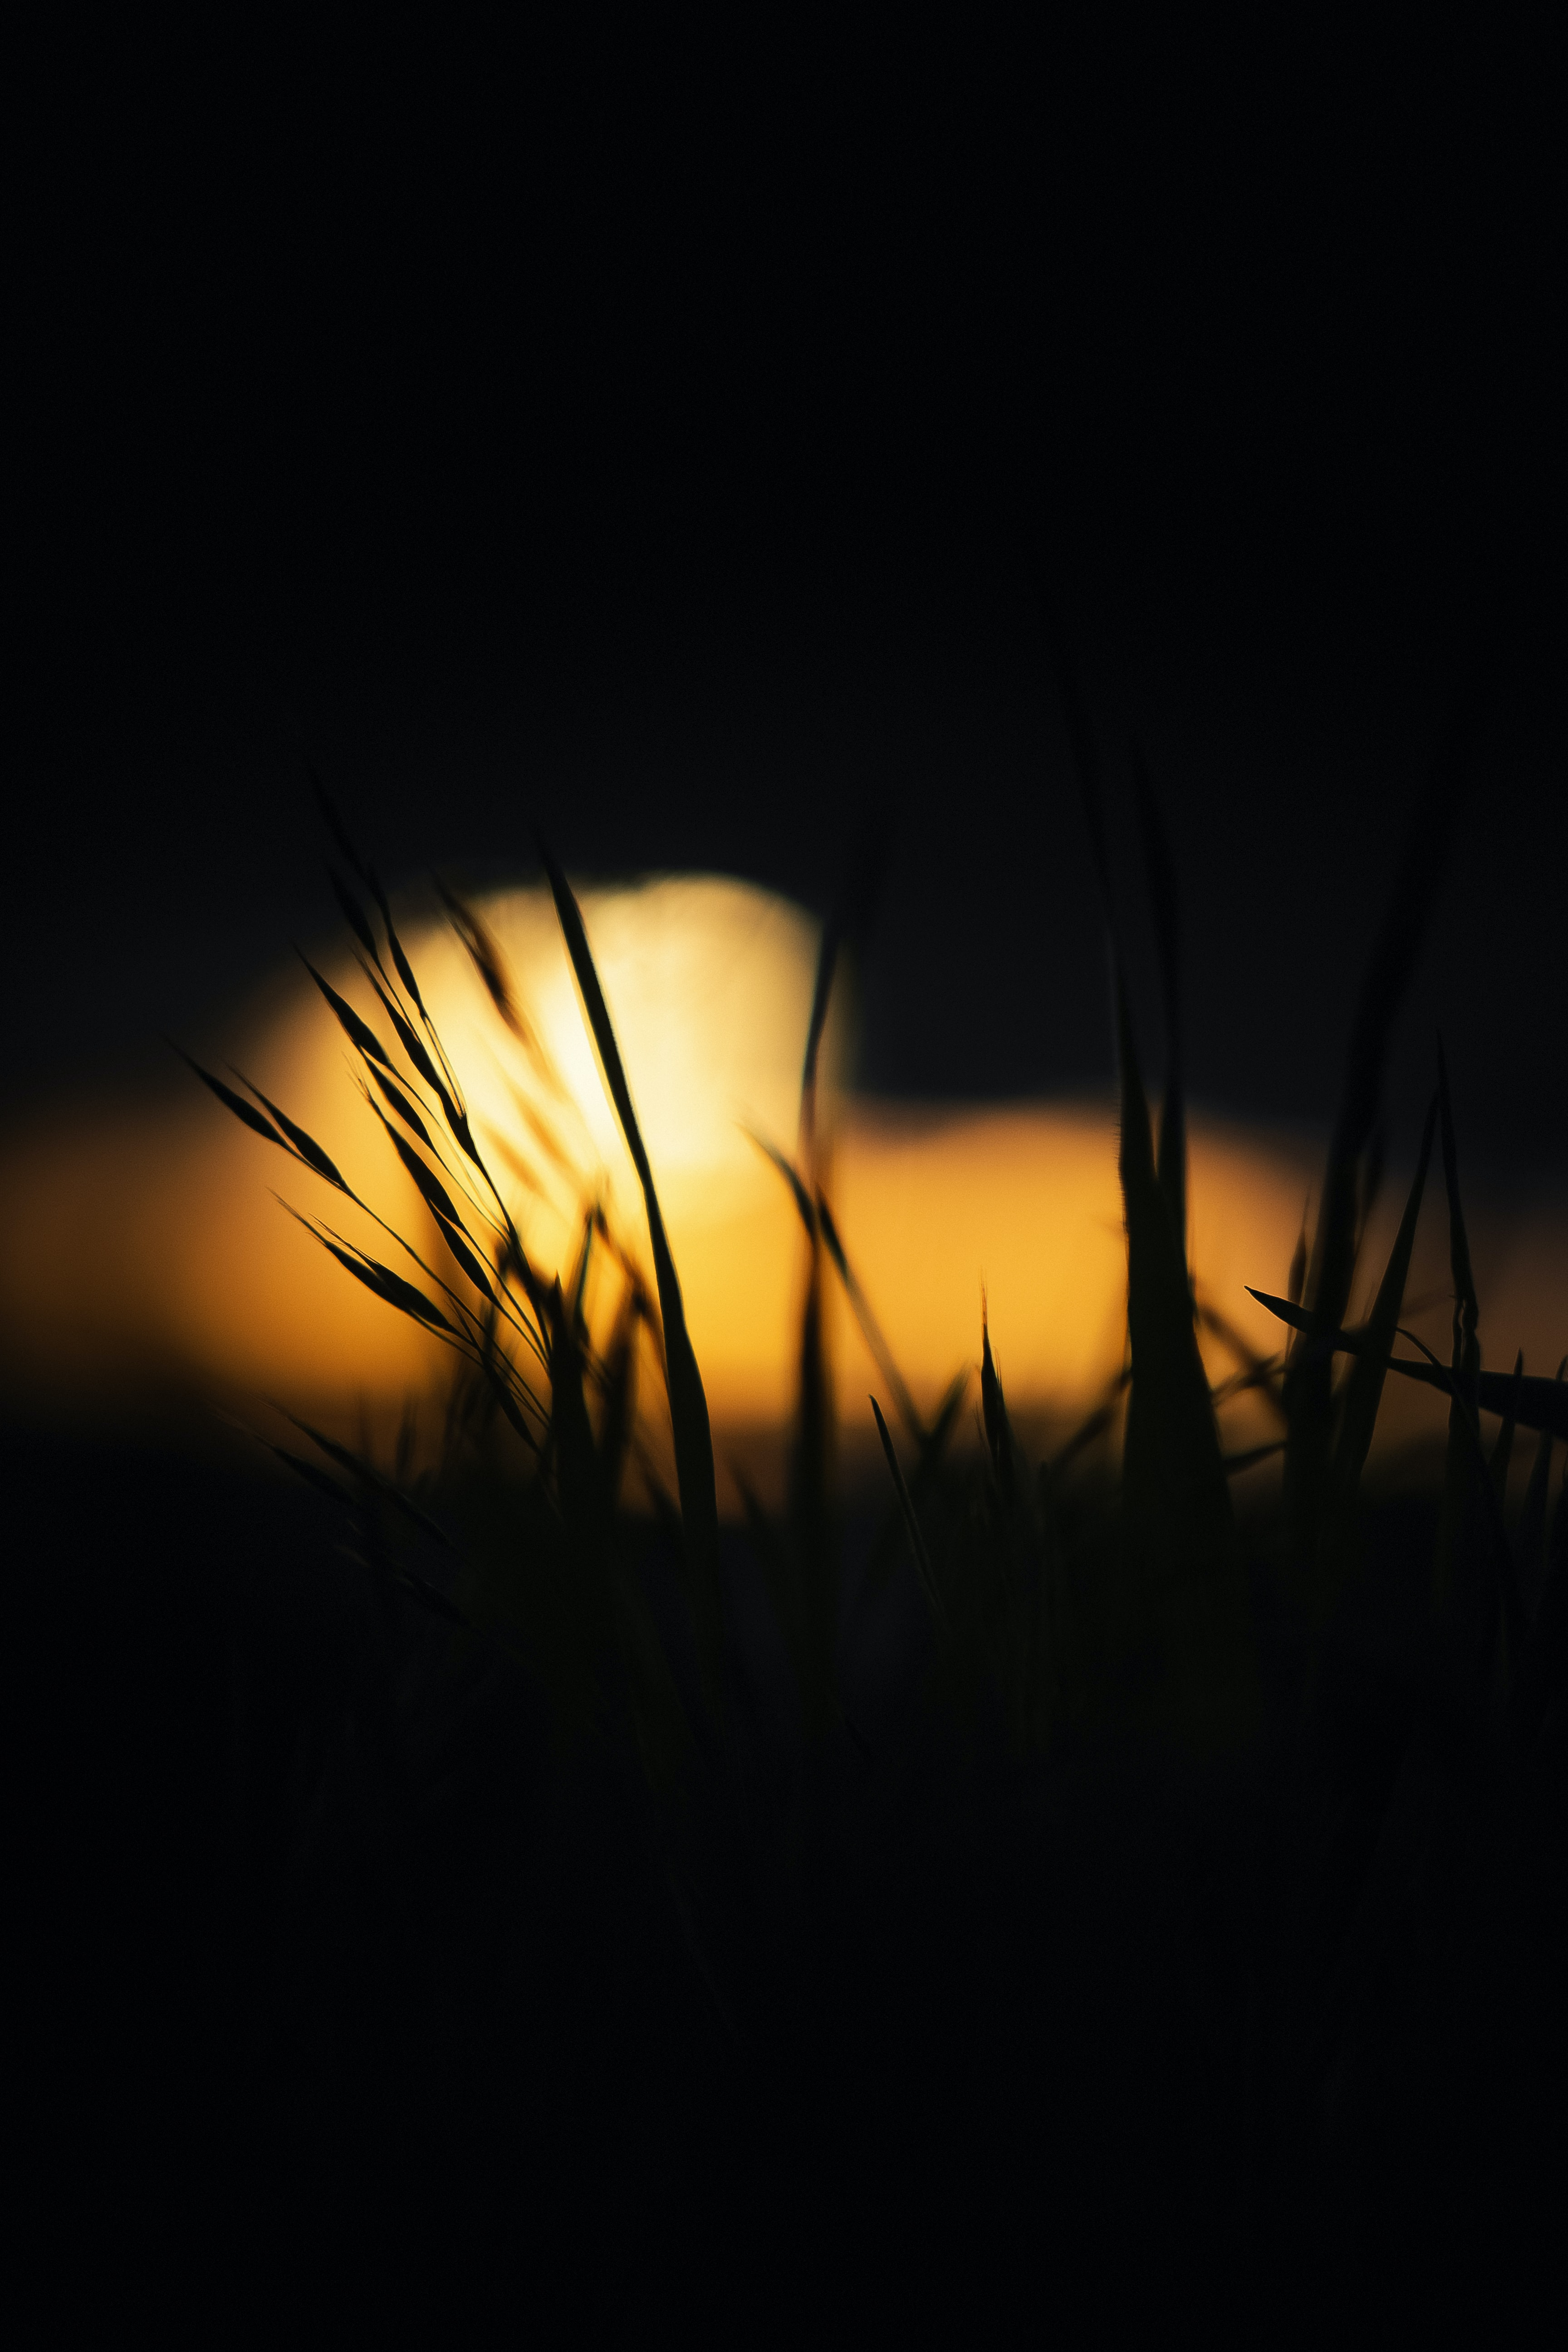 133915 Screensavers and Wallpapers Dark for phone. Download Dark, Grass, Glow pictures for free